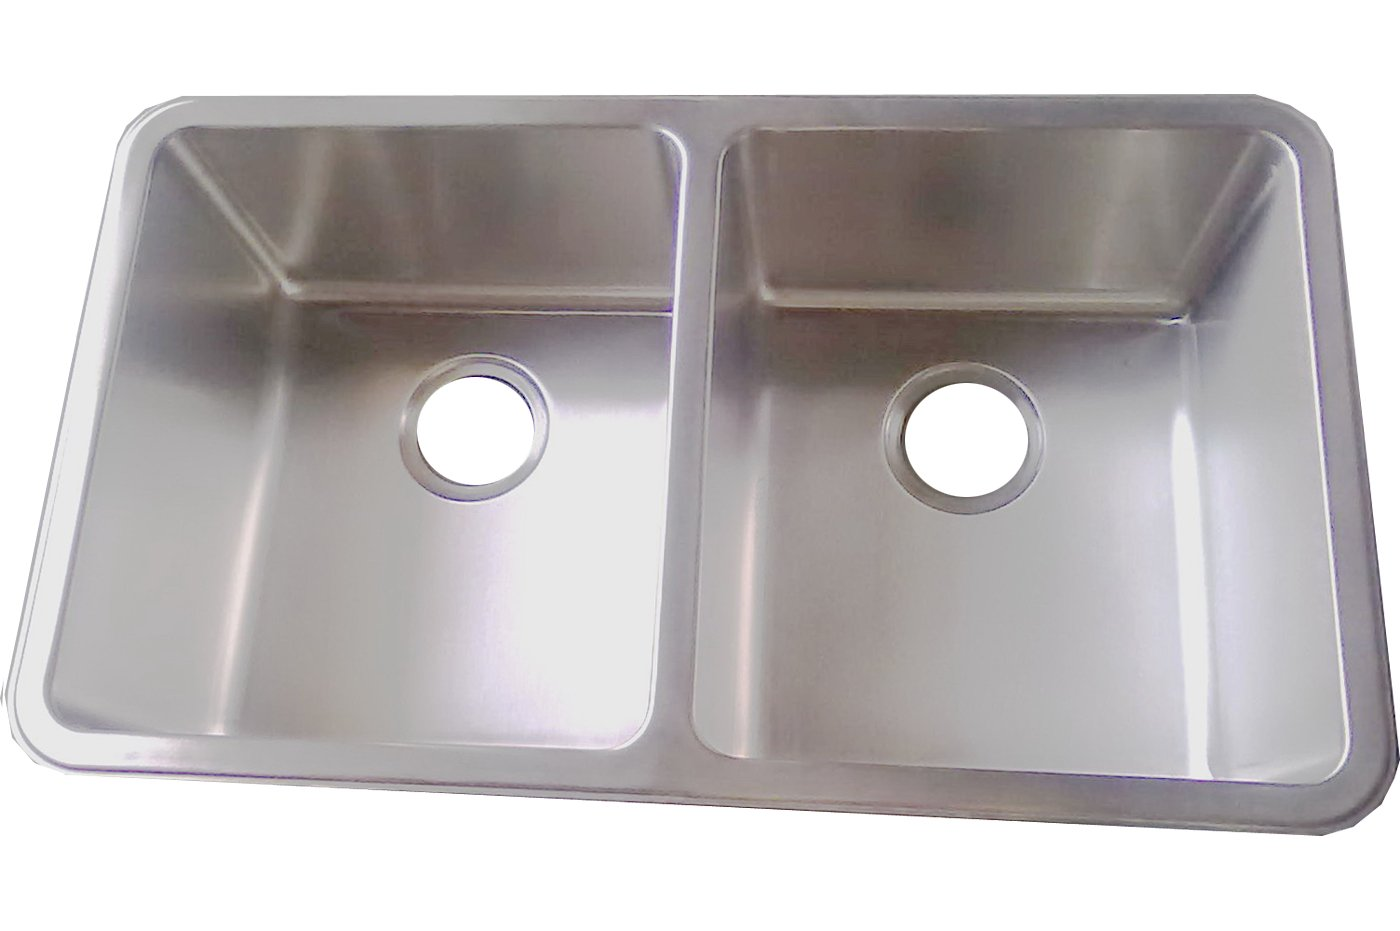 Kitchen Sinks Undermount Double Bowl Brushed Stainless Steel D01